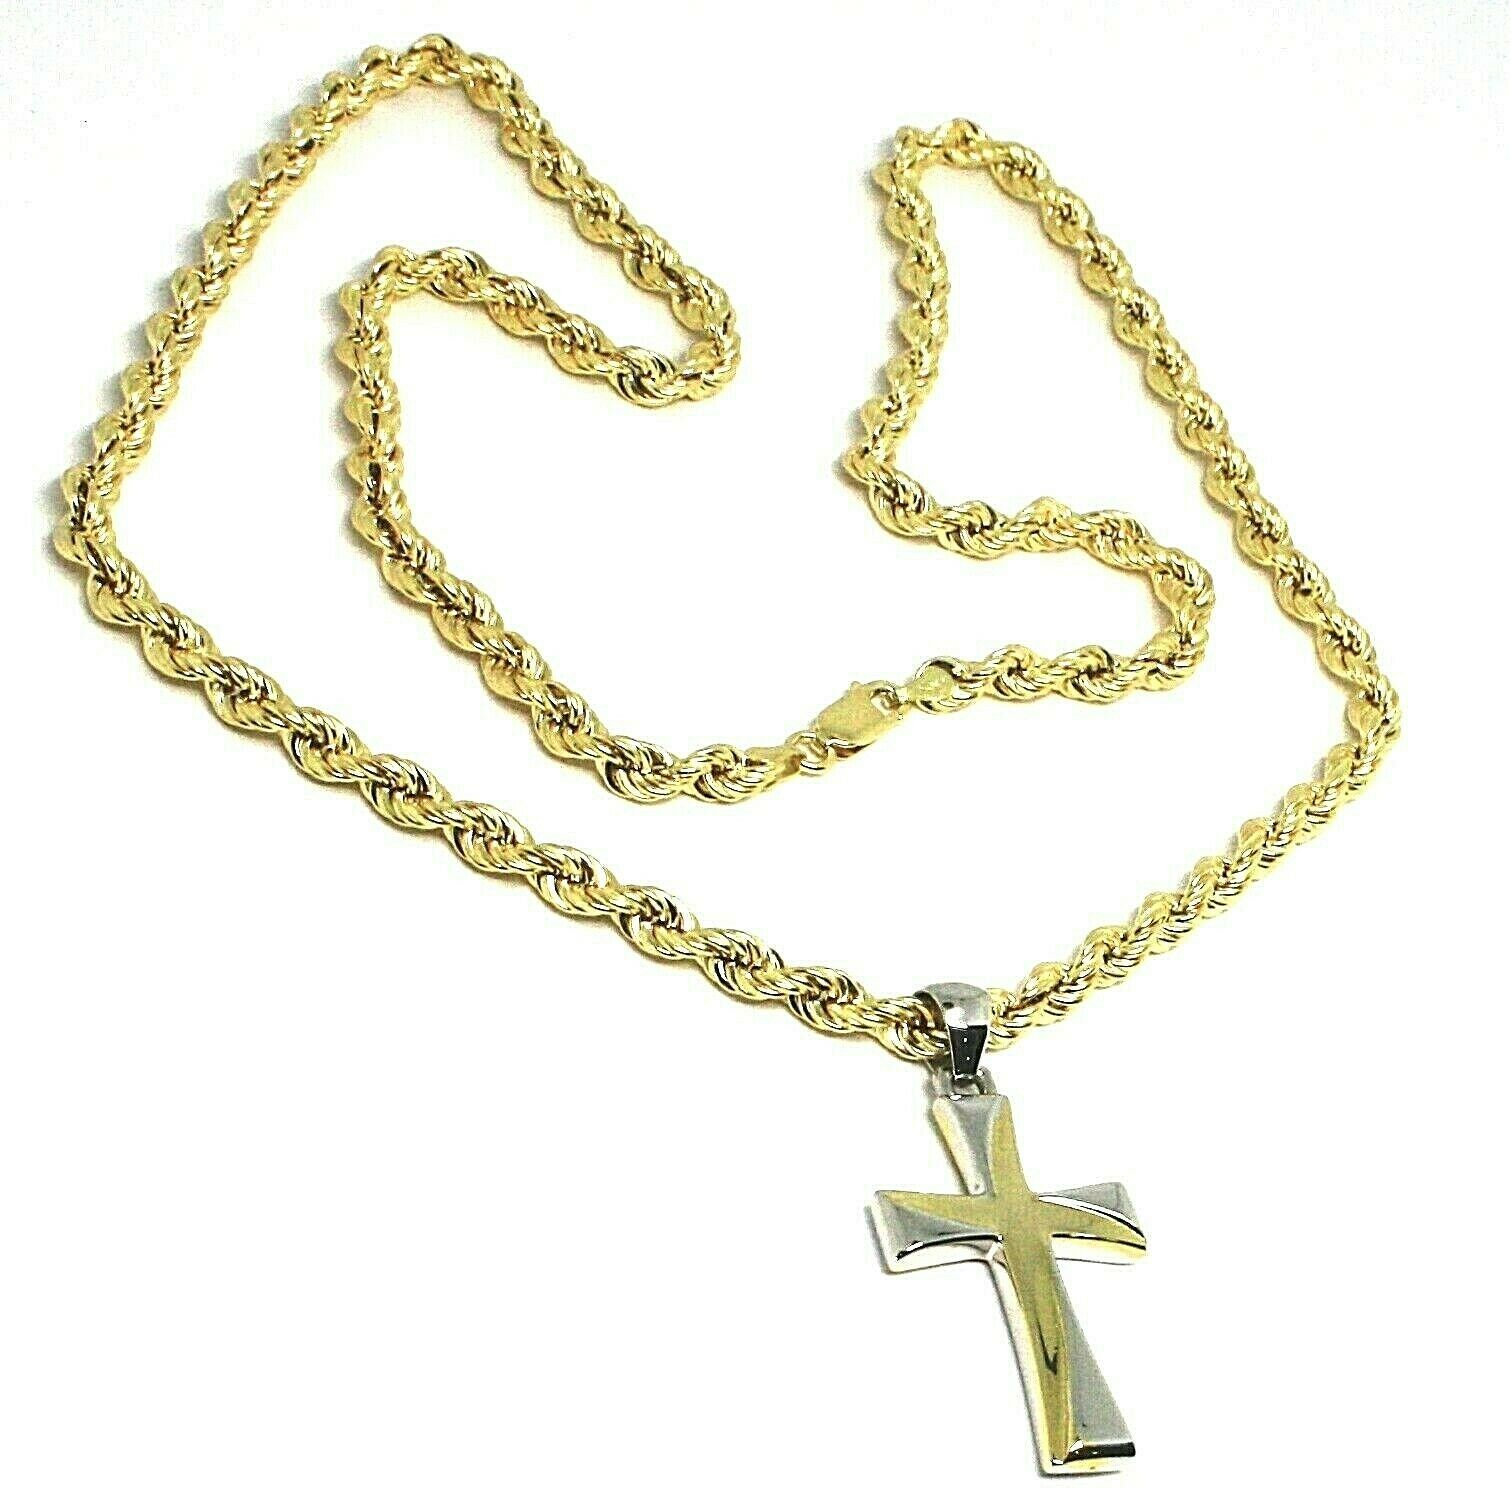 18K YELLOW GOLD BIG 5 MM ROPE CHAIN, 24 INCHES & STYLIZED SQUARE TWO TONE CROSS